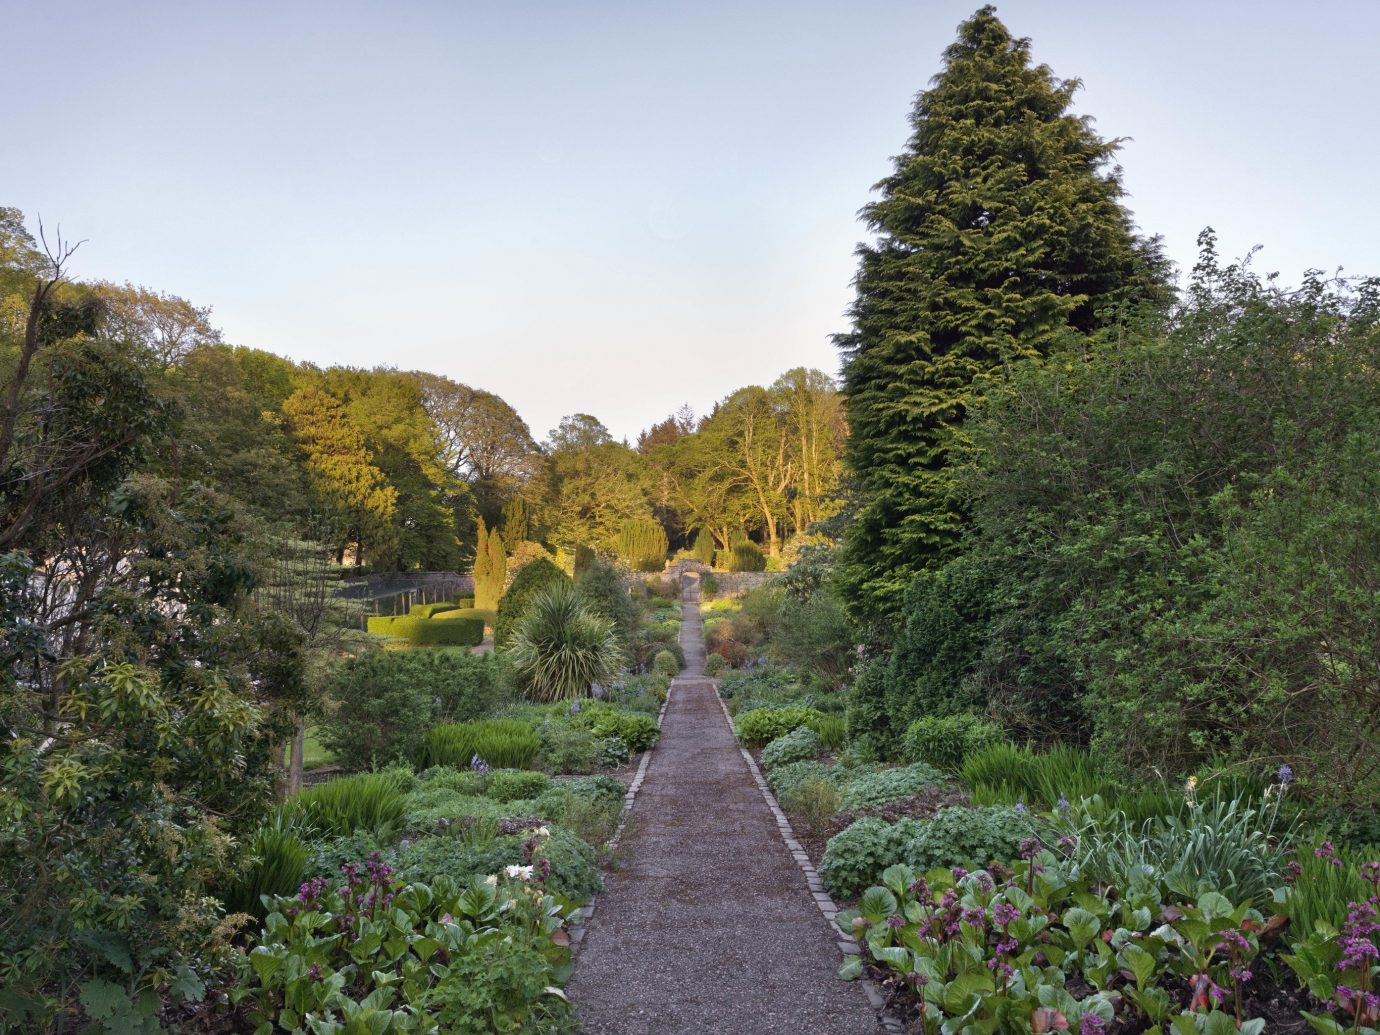 Garden at Glenapp Castle